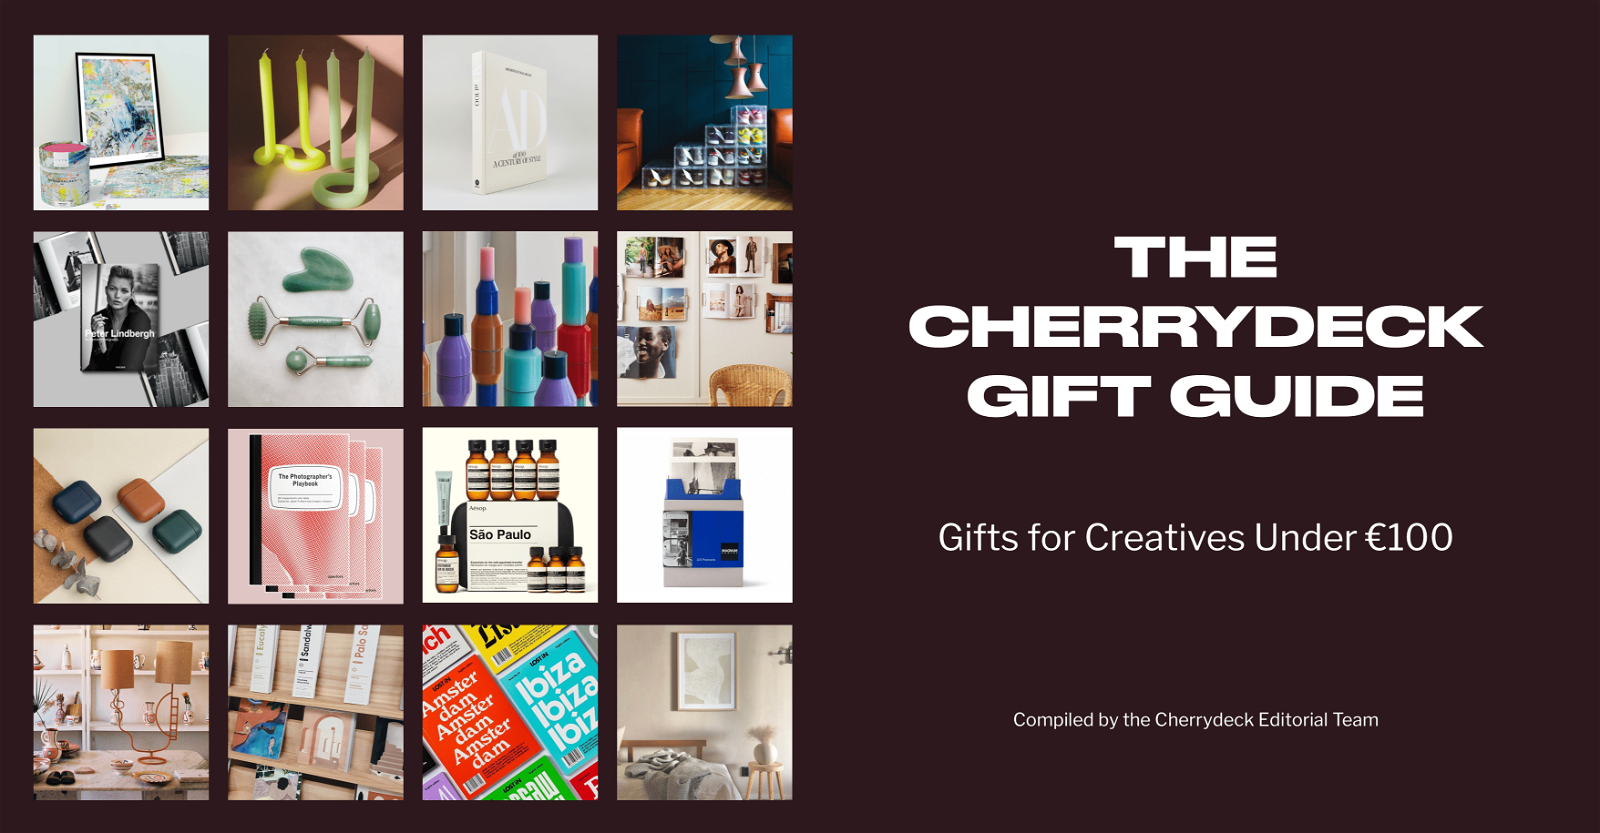 Cherrydeck Holiday Gift Guide for Creatives